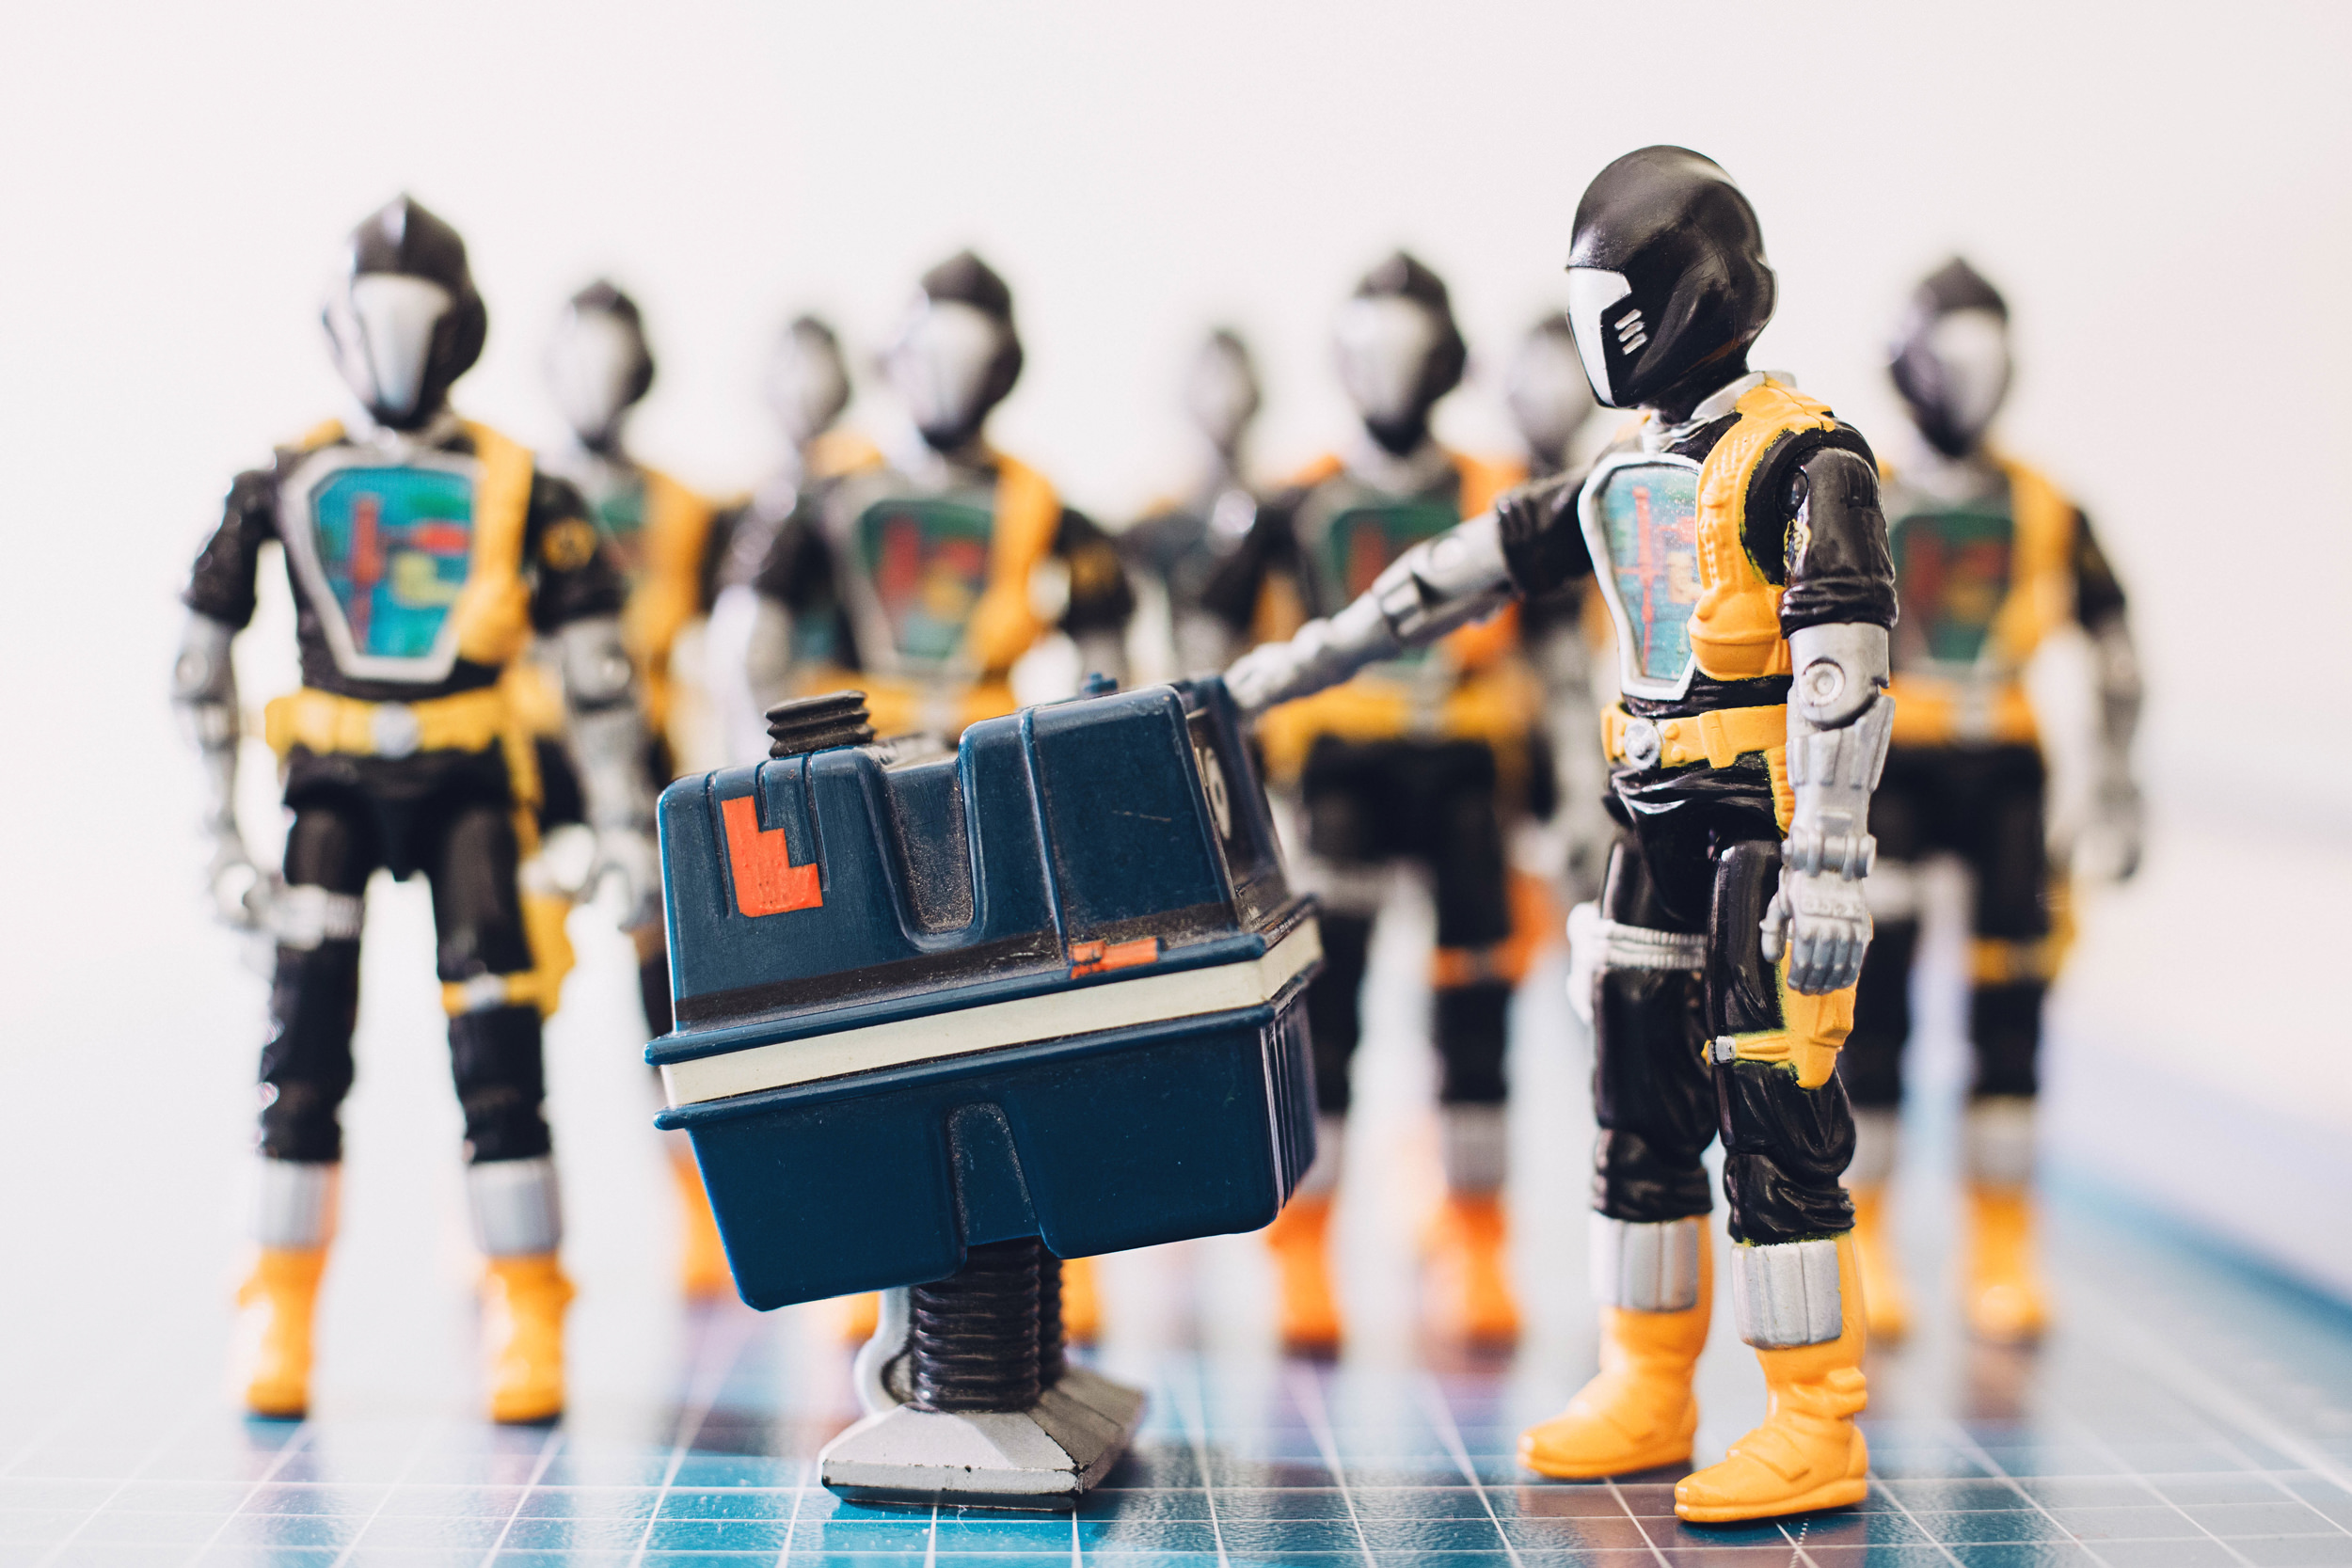 gonk-droid-bats-starwars-gijoe-robot-toy-photography-action-figure-paul-panfalone.jpg